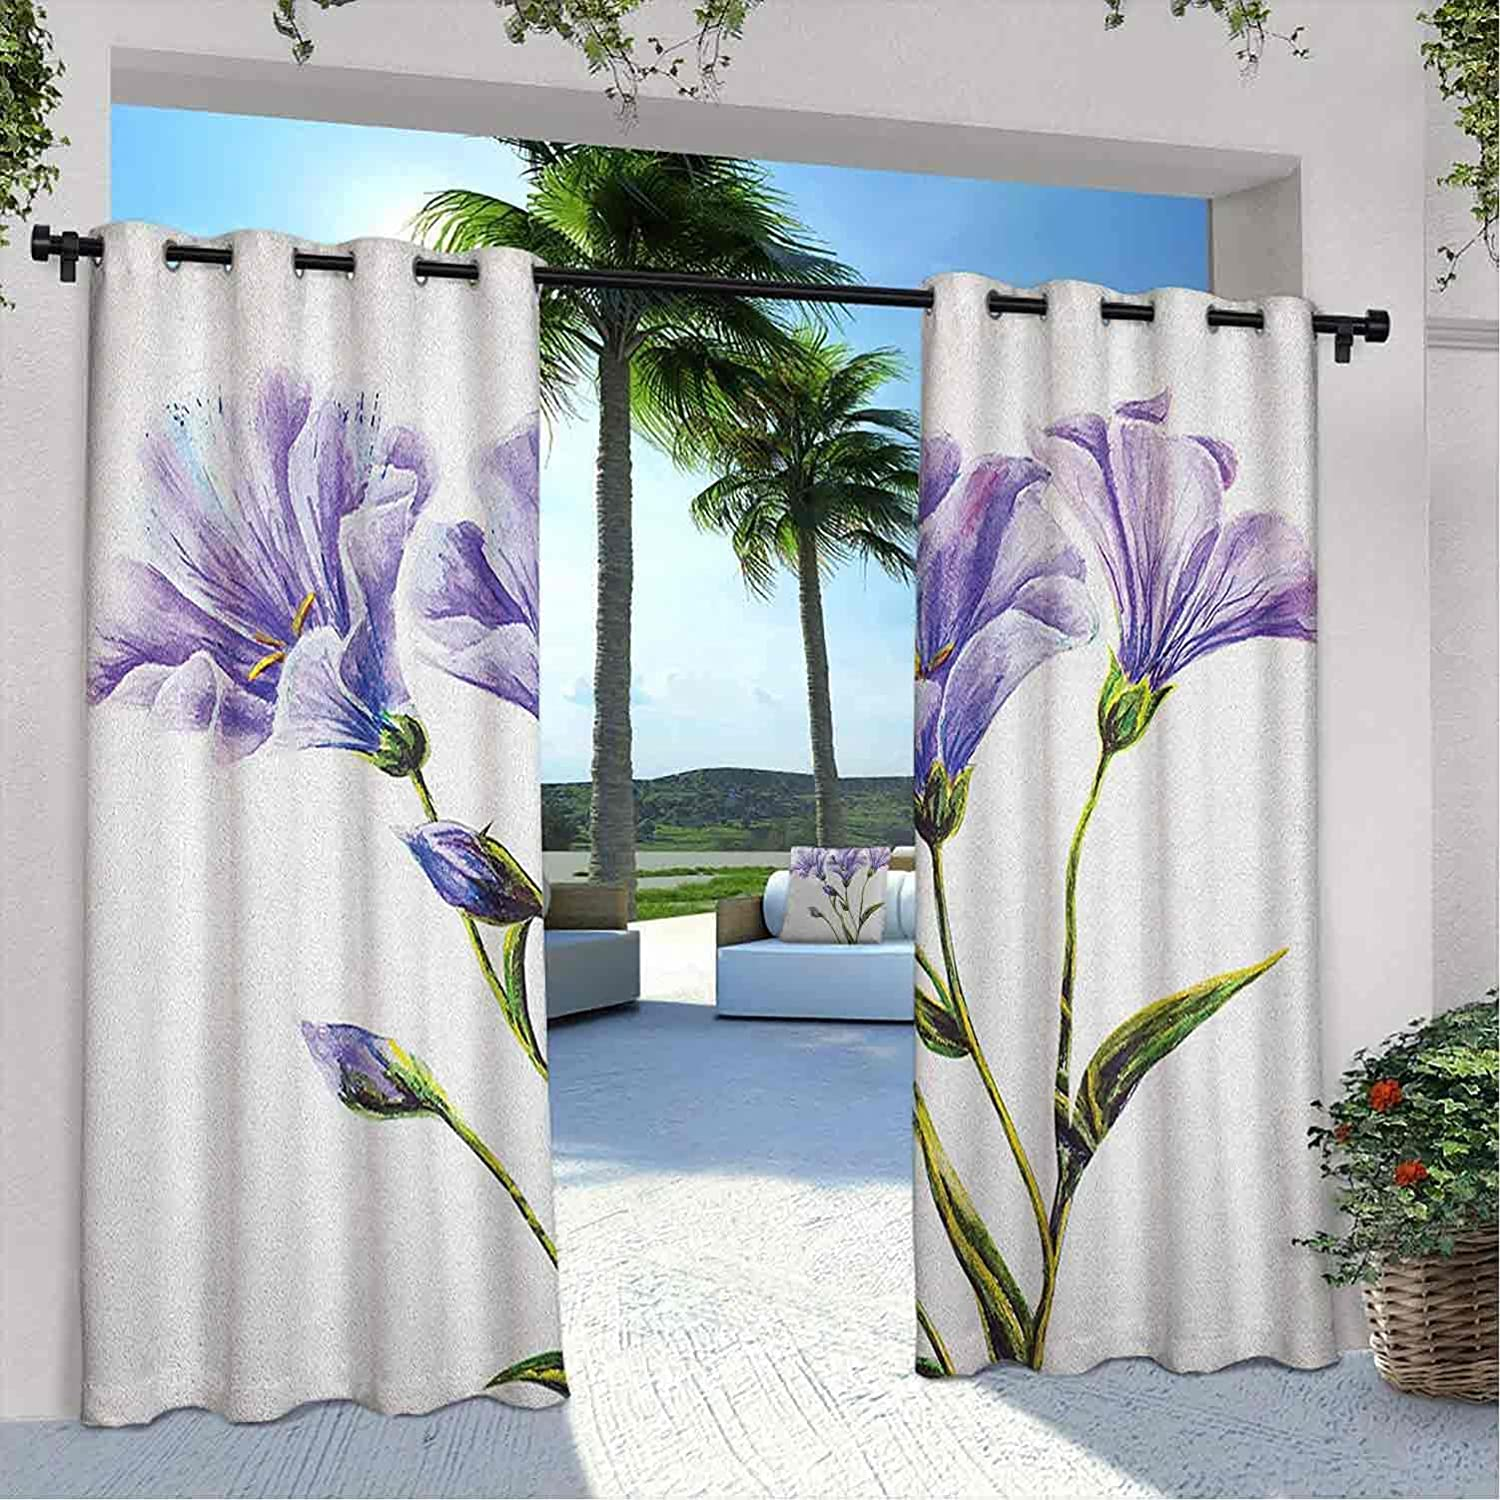 Outdoor Pavilion Watercolor Direct store Flower Wild Outlet SALE Drawing Curtain Flowers